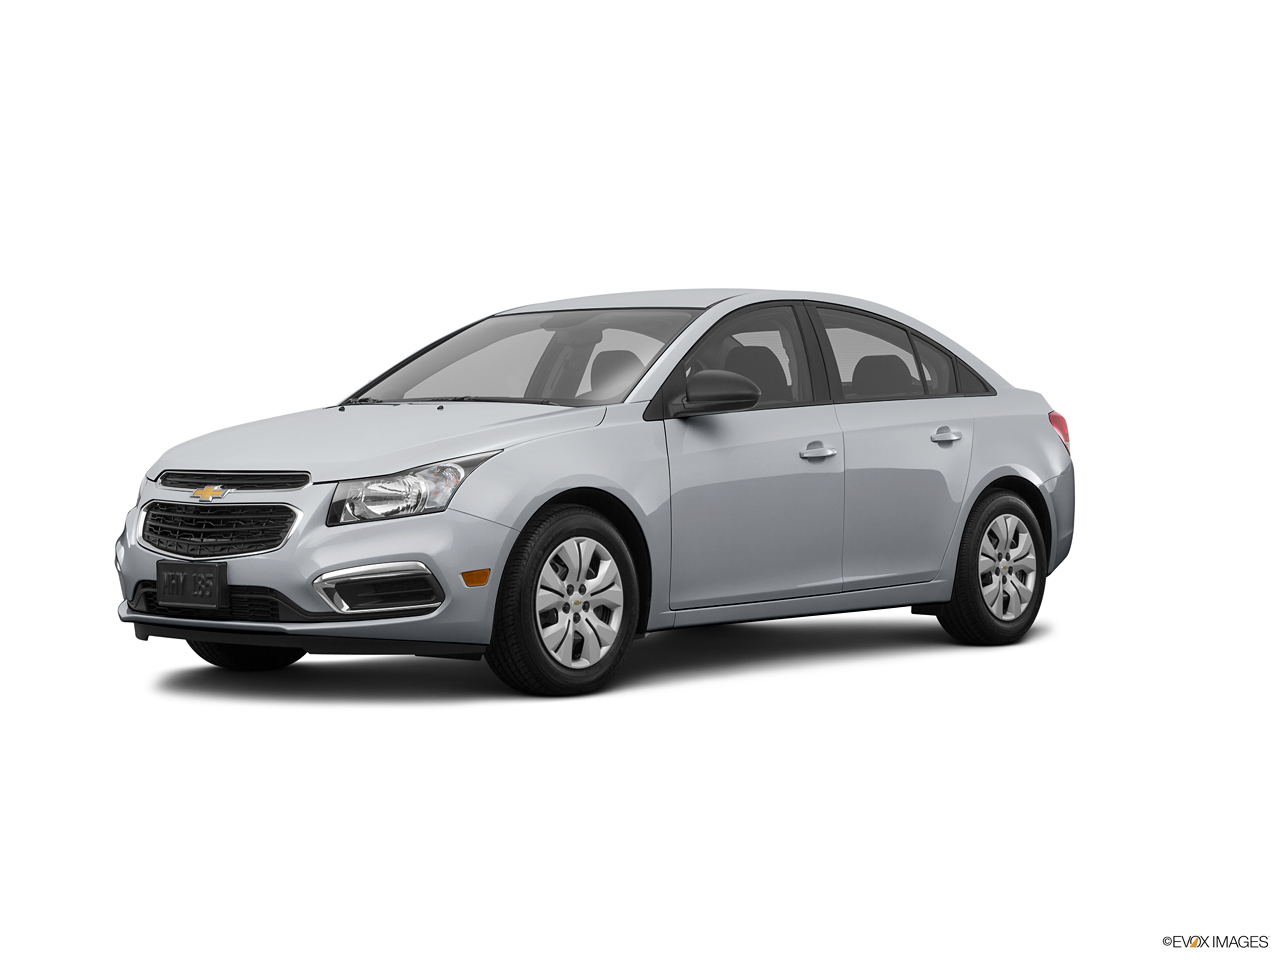 chevrolet cruze fuel tank capacity 2017 cars review. Black Bedroom Furniture Sets. Home Design Ideas